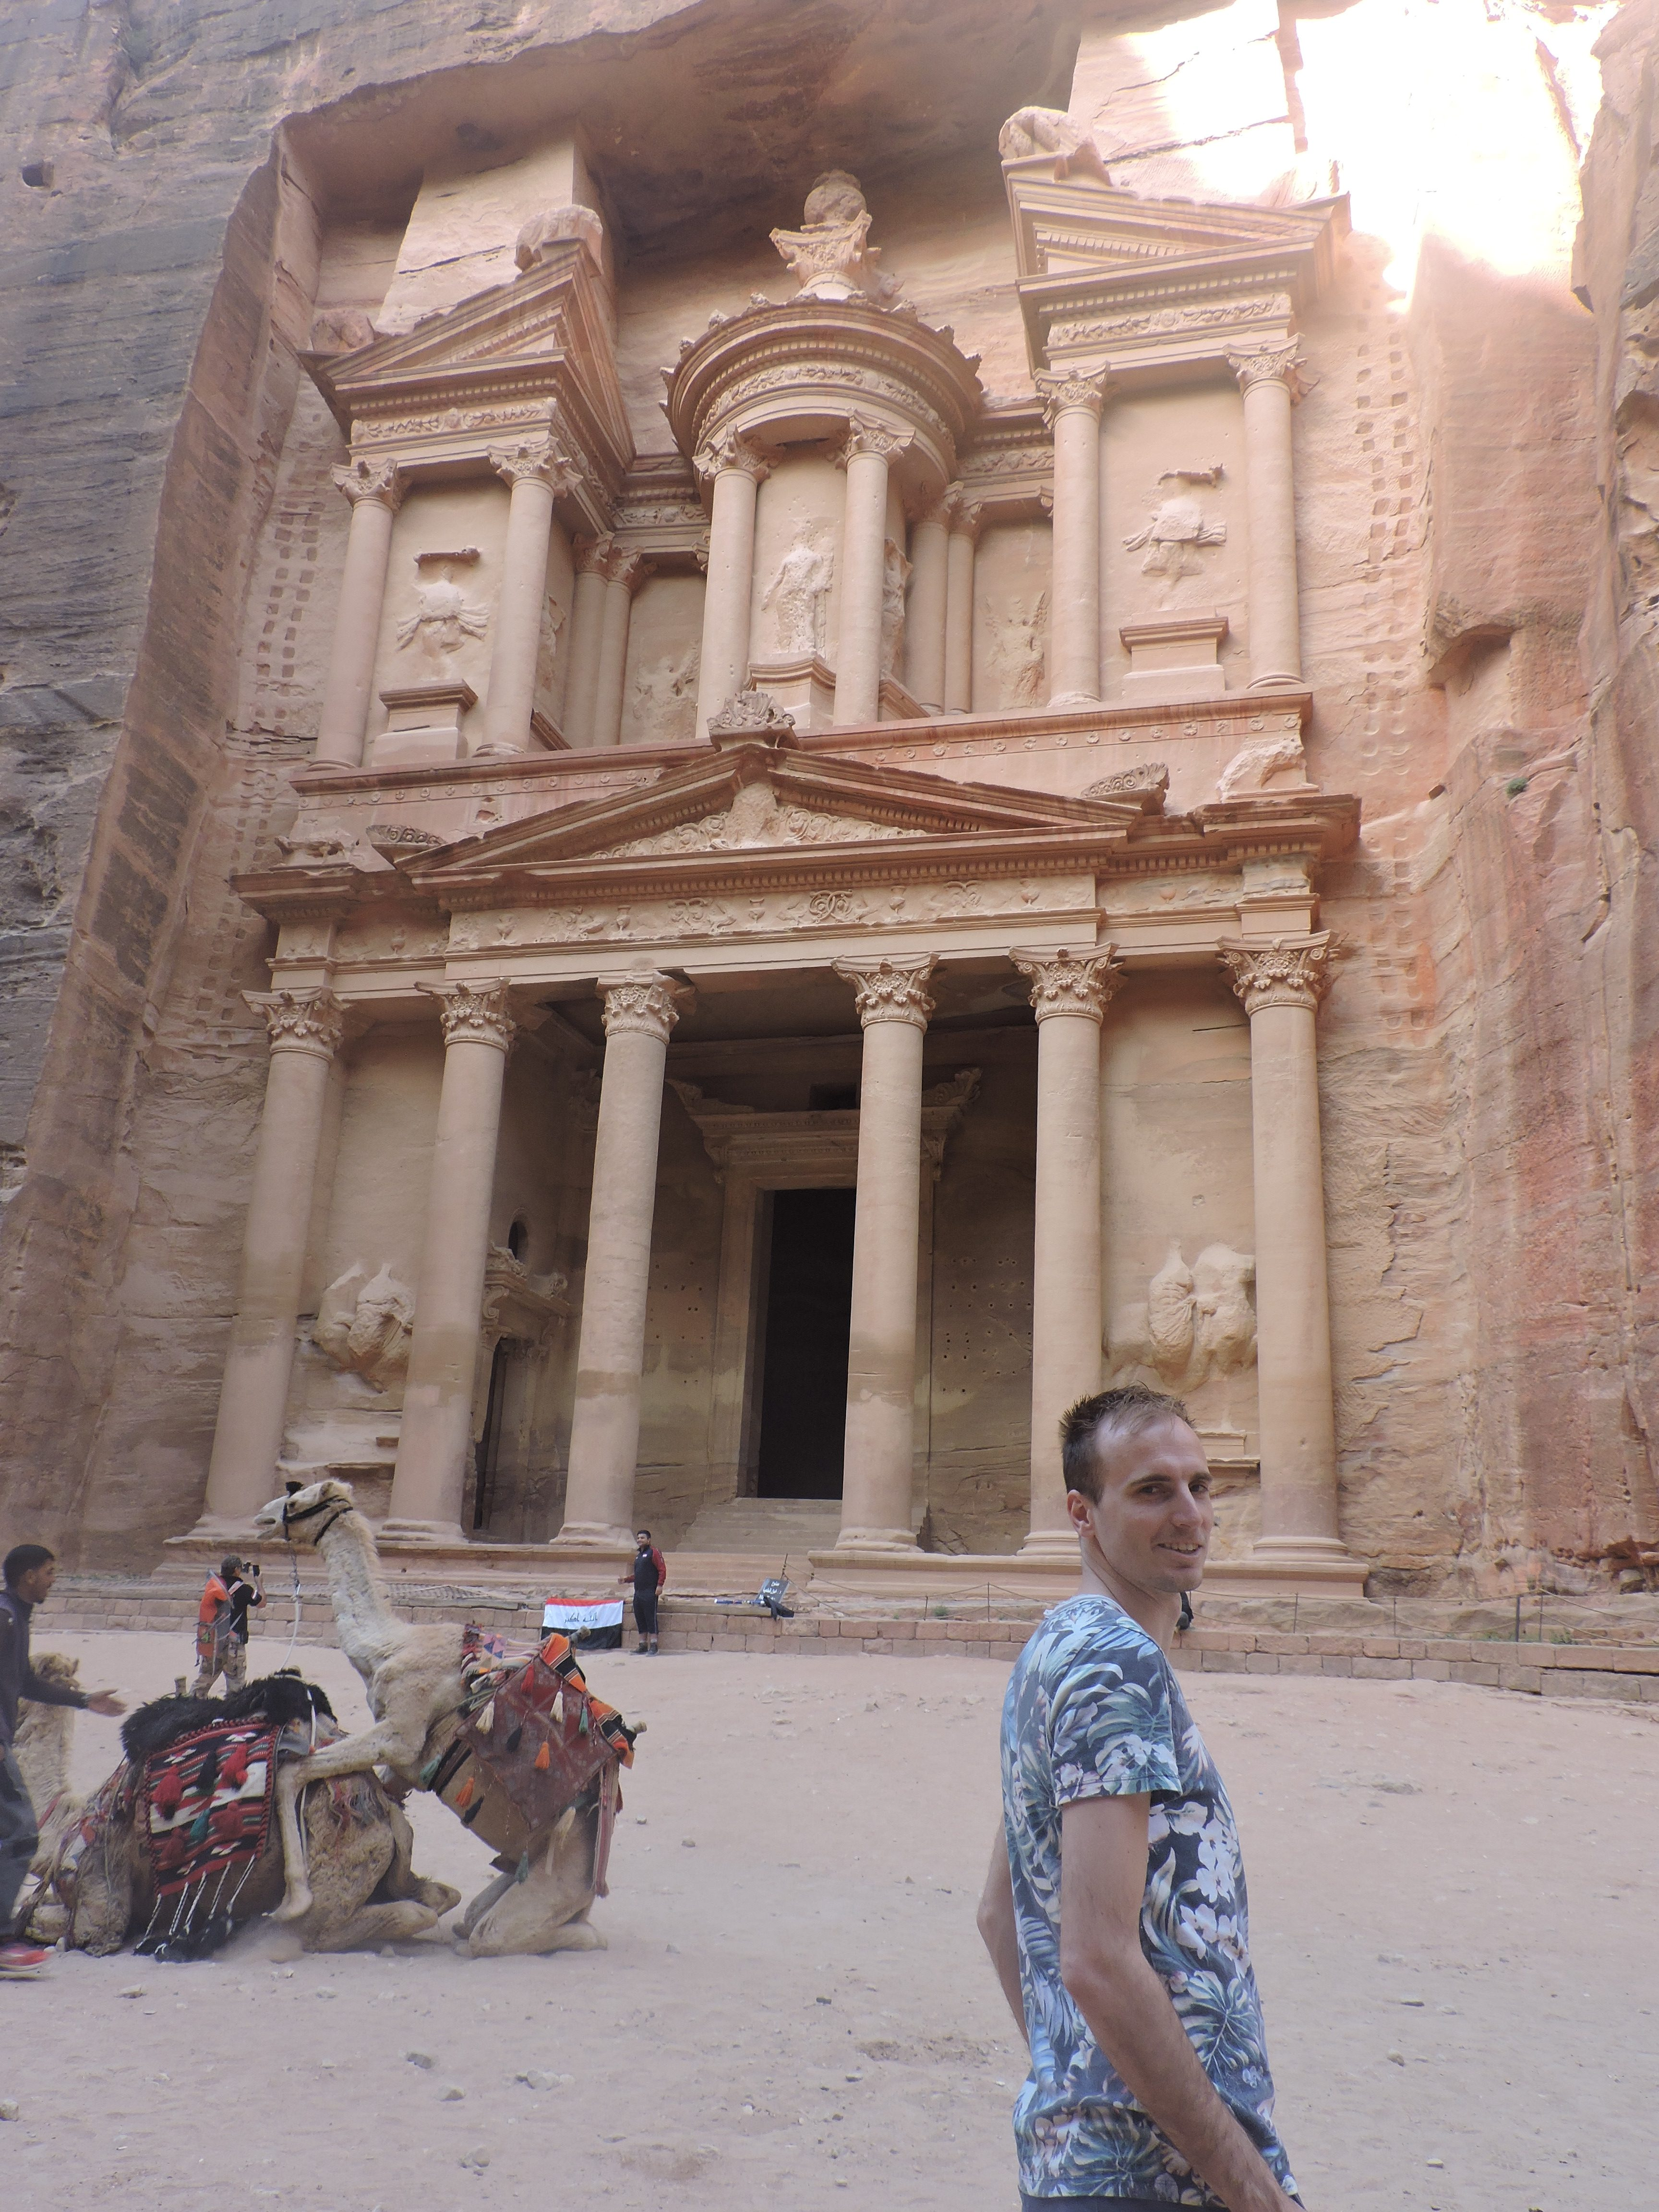 Treasury in Petra met kamelen